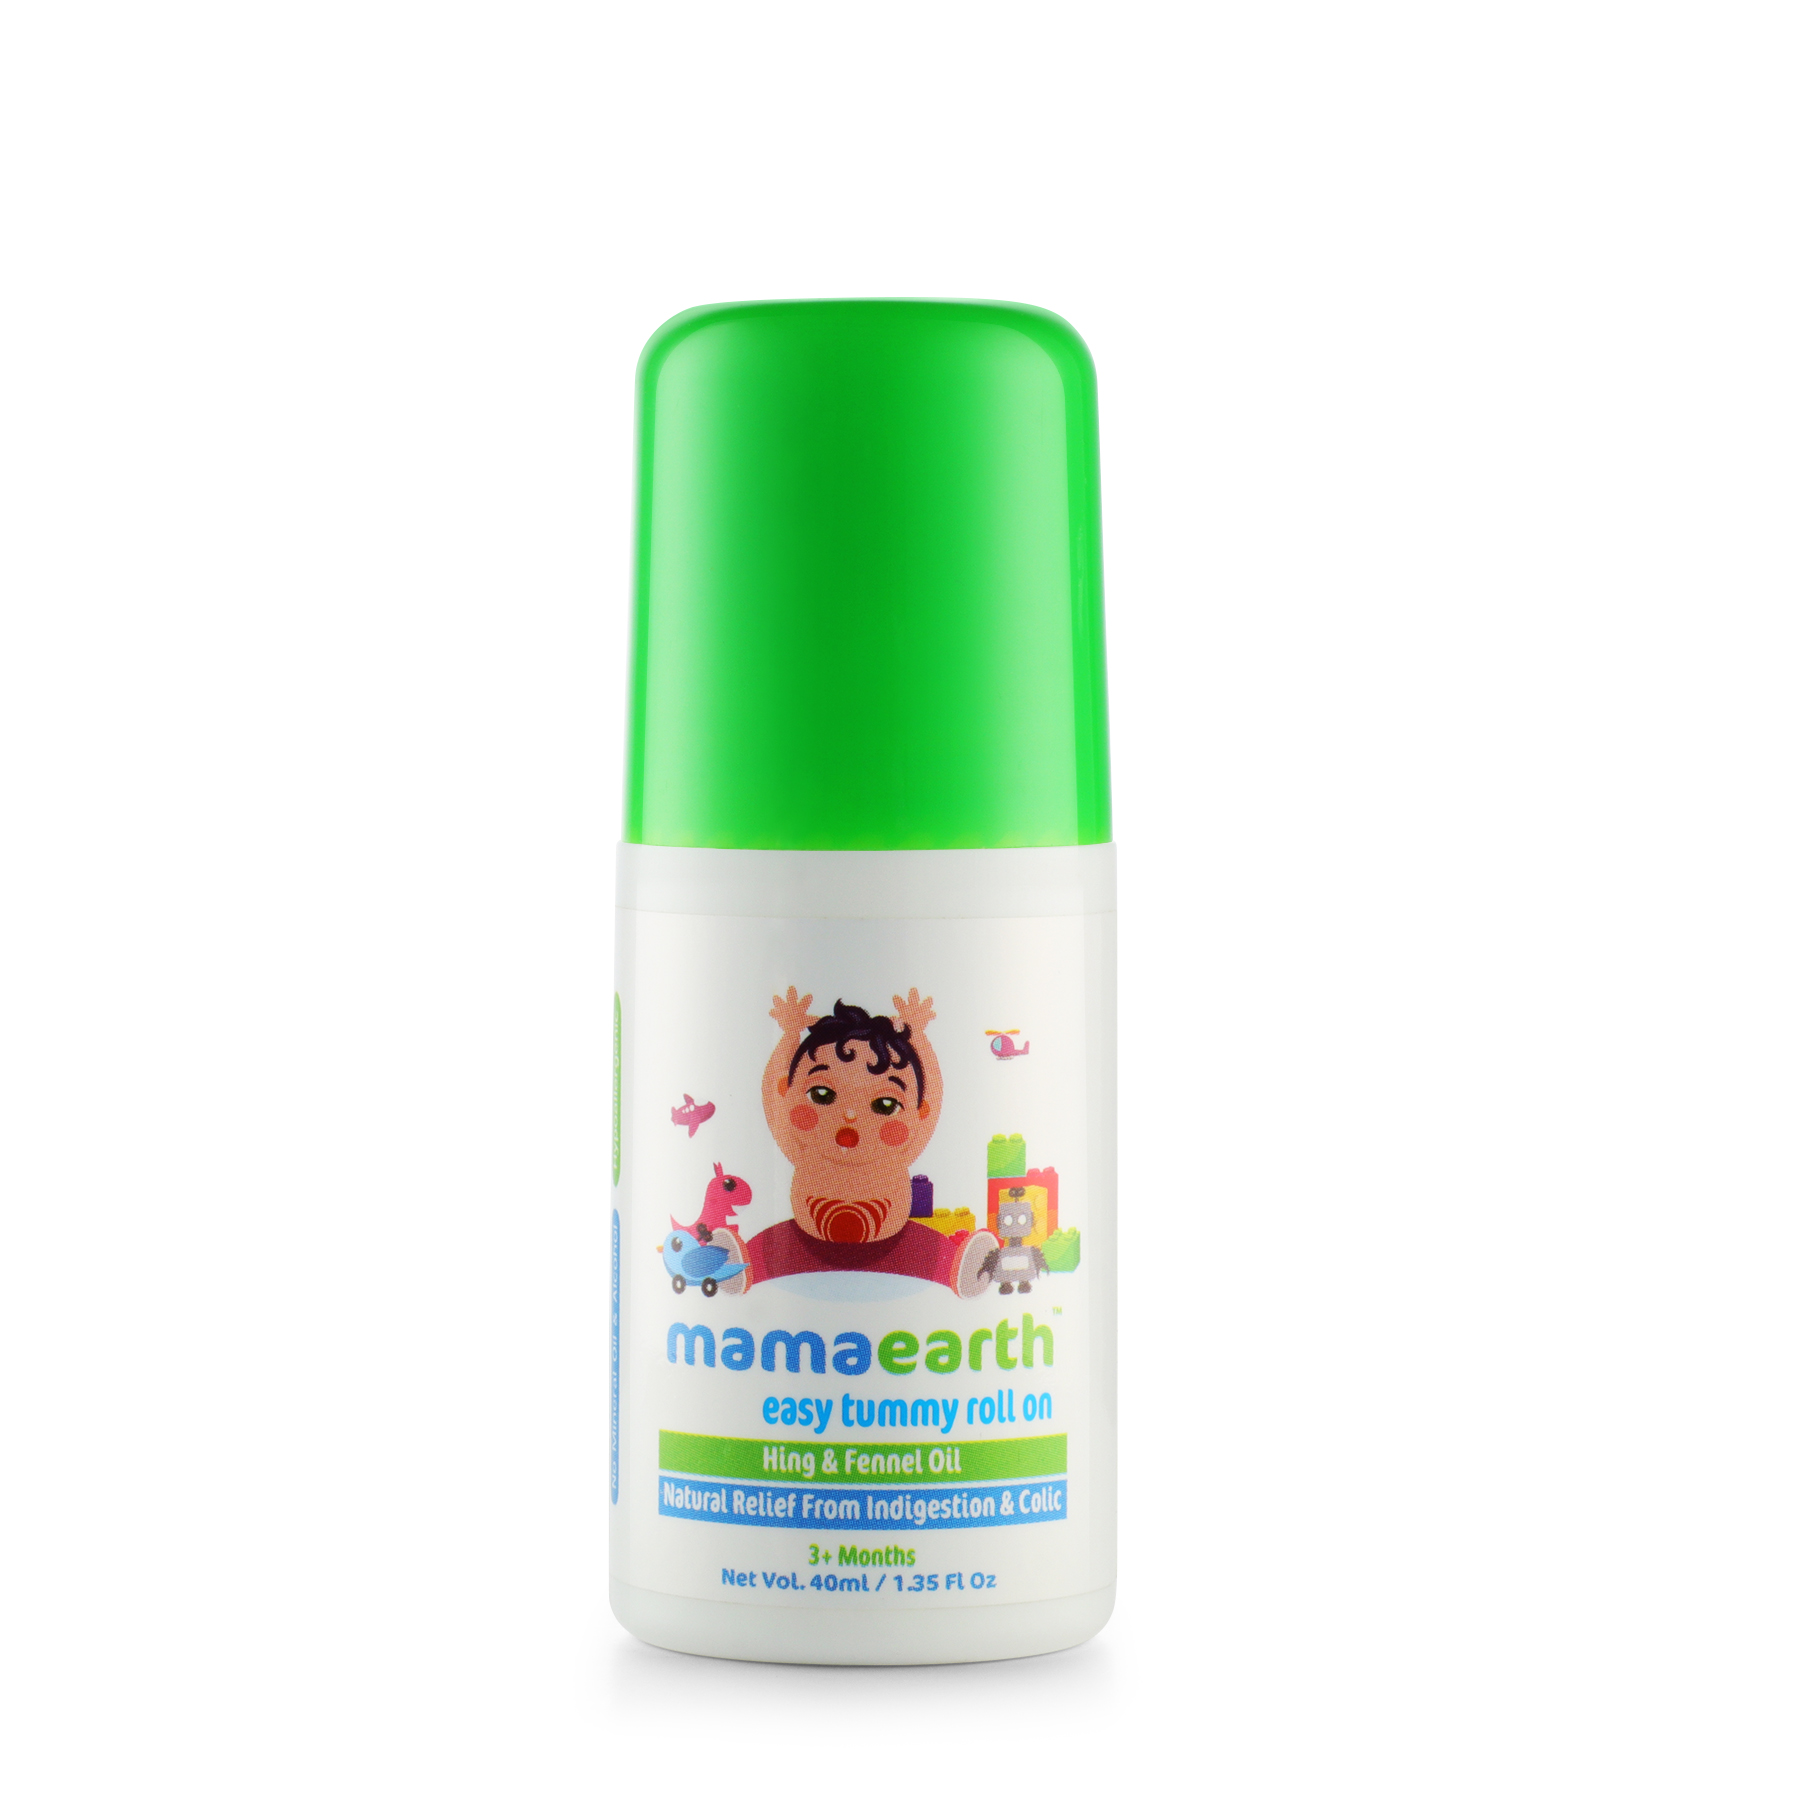 Mamaearth Easy Tummy Roll On For Digestion And Colic Relief- Hing And Fennel